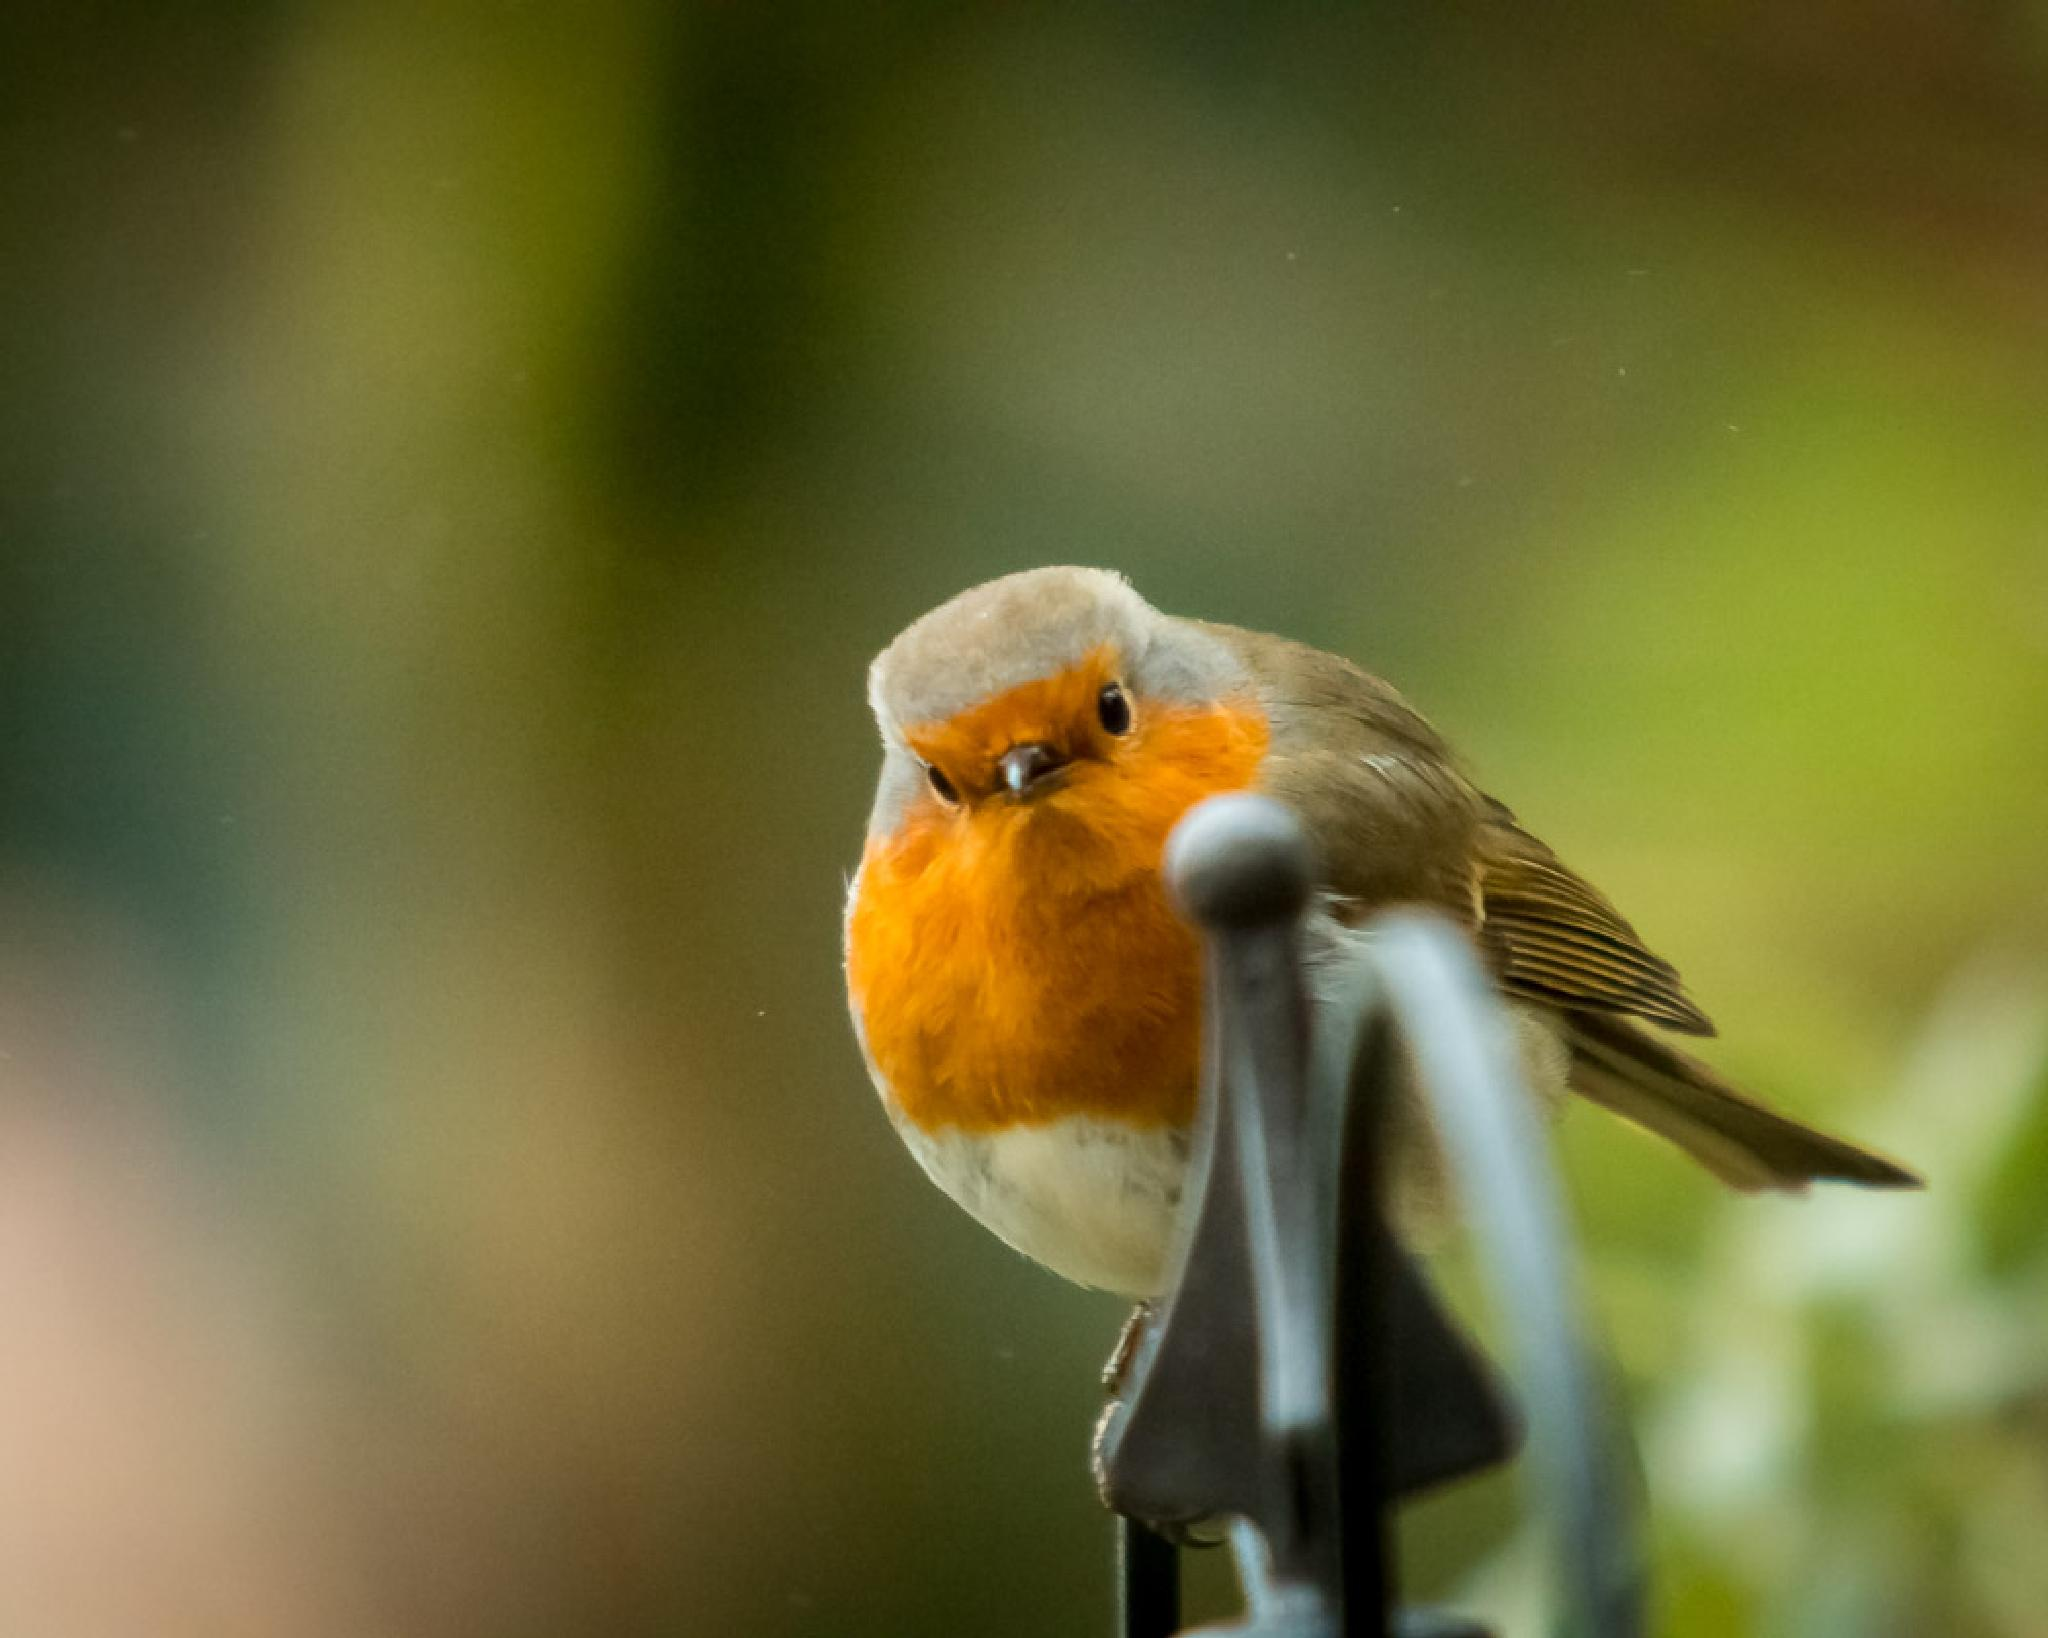 You Looking At Me?? by Jasonvaughanphotography